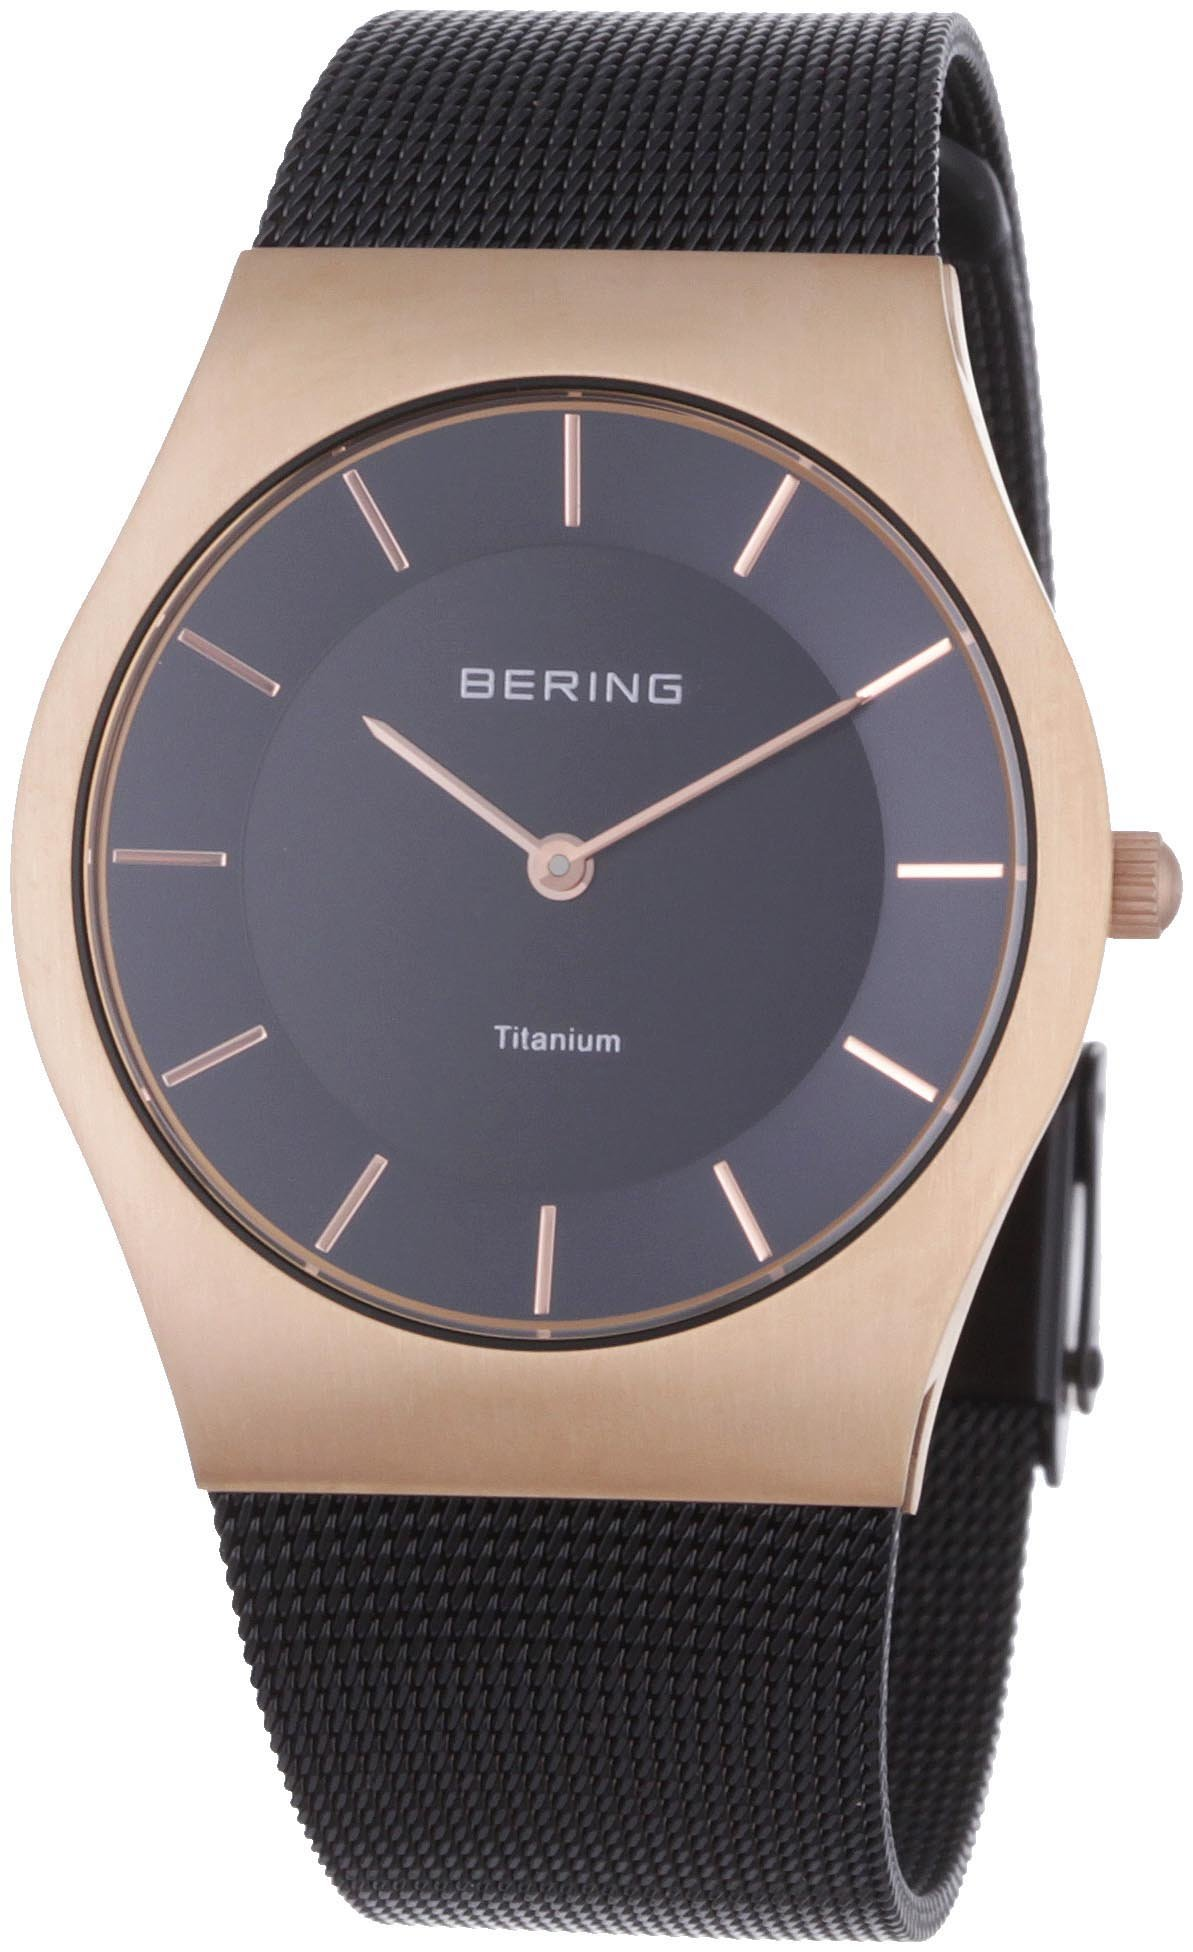 BERING Time 11935-262 Unisex Classic Collection Watch with Stainless-Steel Strap and scratch resistent sapphire crystal. Designed in Denmark